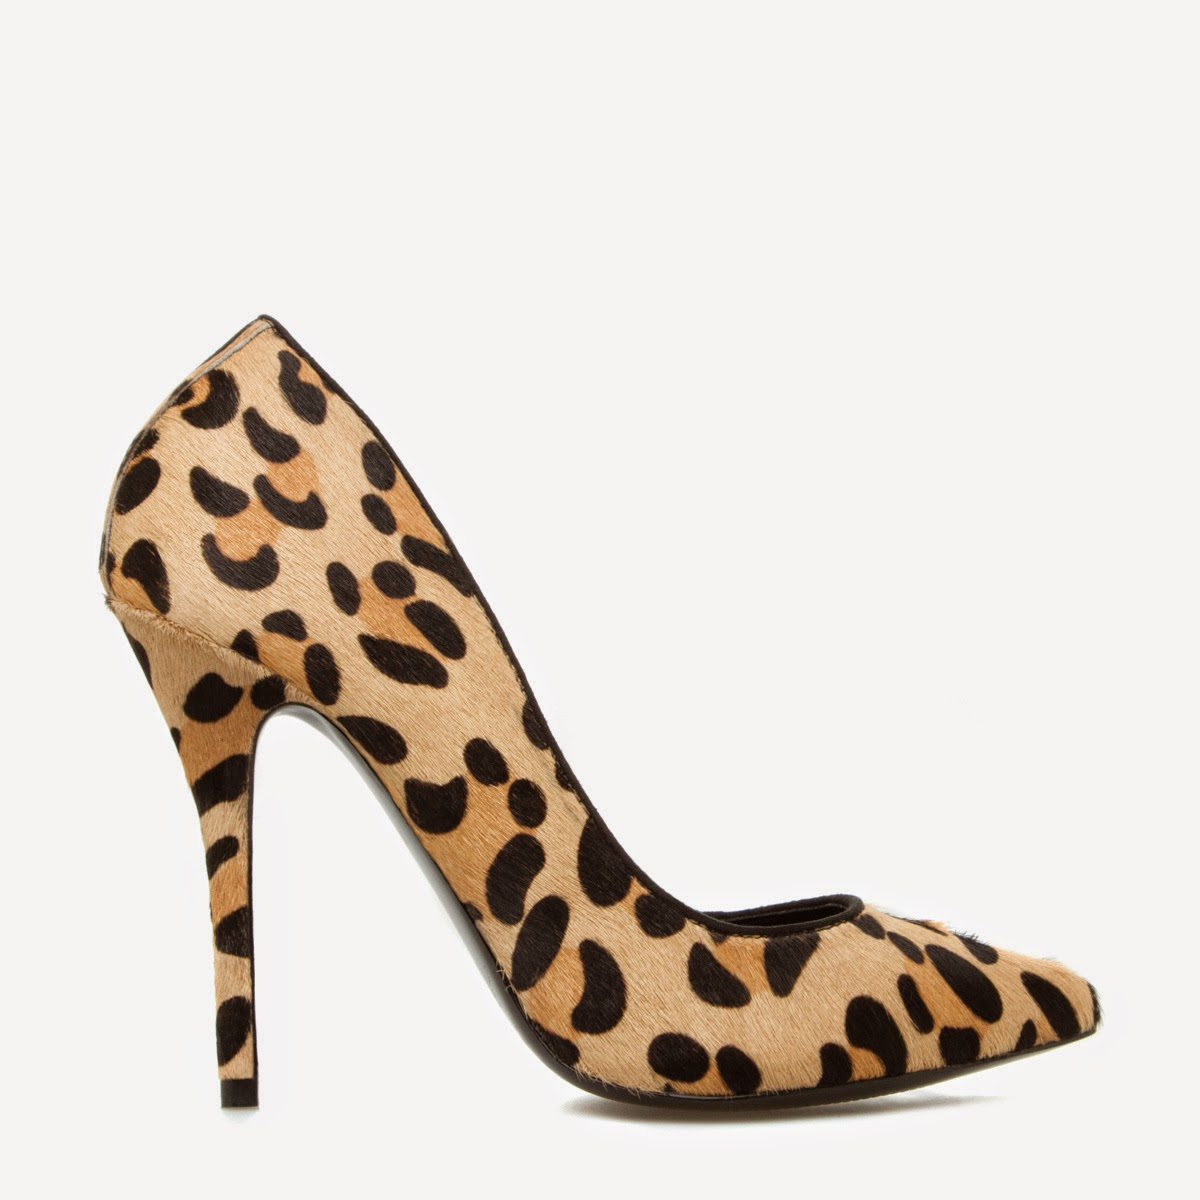 wardrobe essentials, basics,leopard print pumps